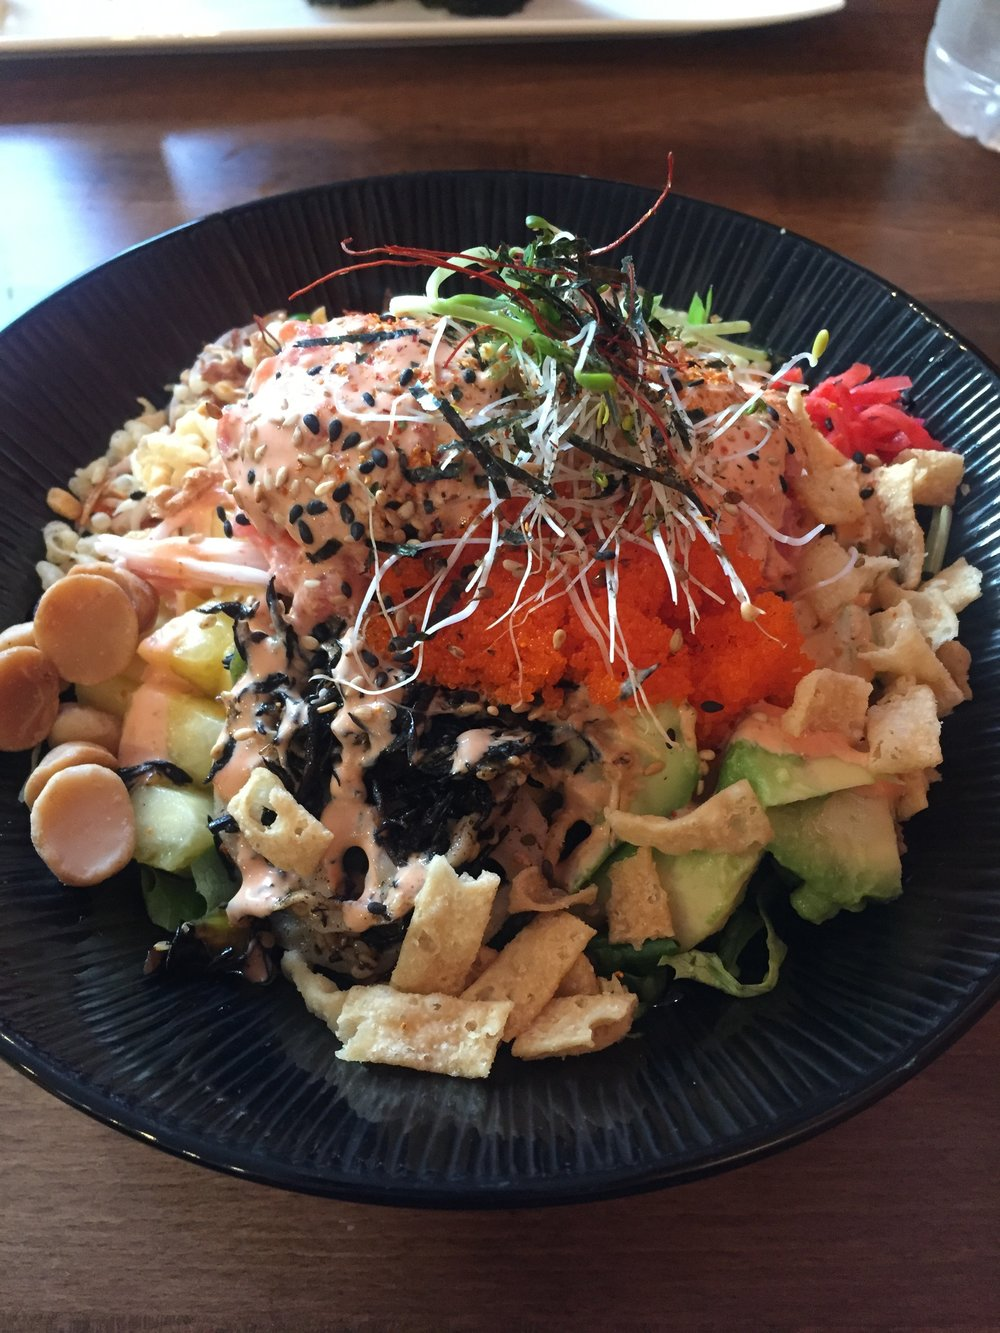 Spicy Tuna at Crunchy Poke